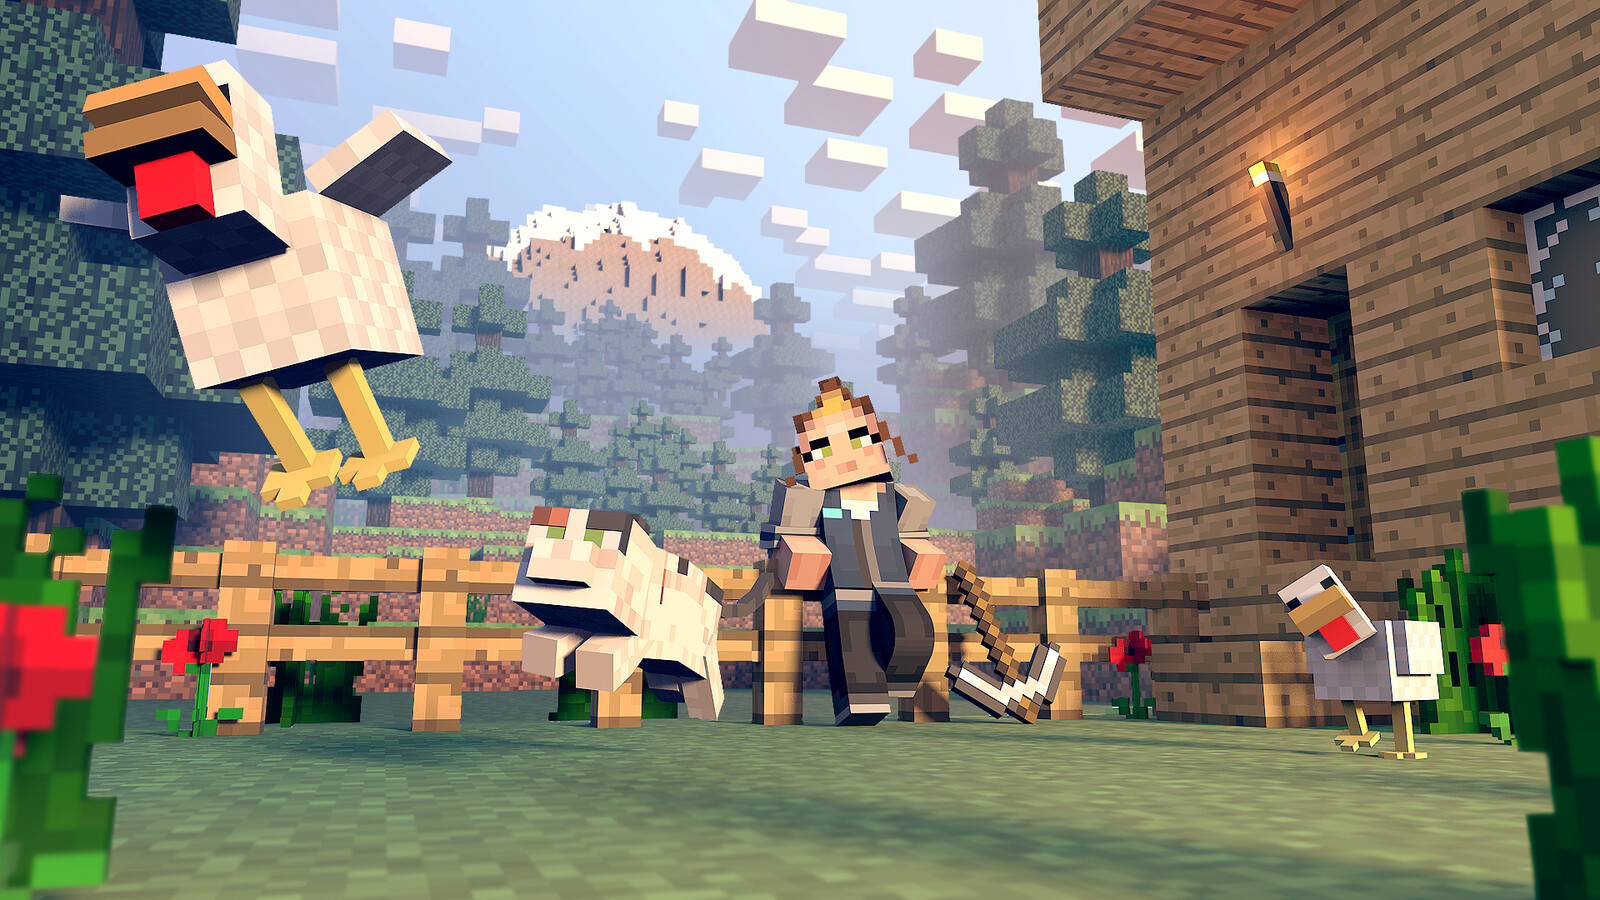 Minecraft art test composited, posed and rendered by me